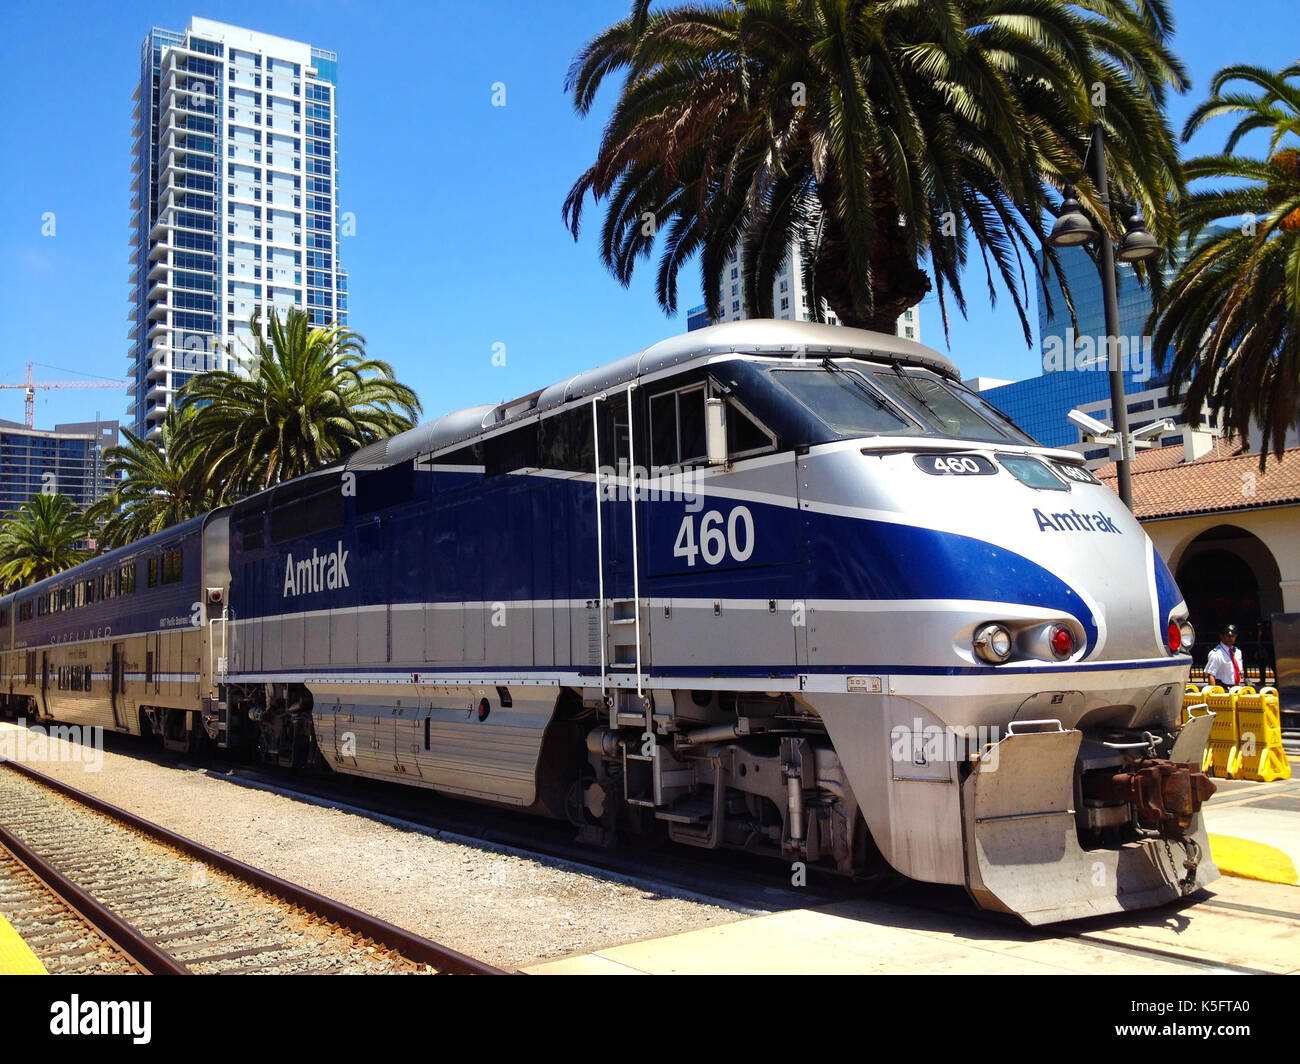 how to get to union station from santa monica